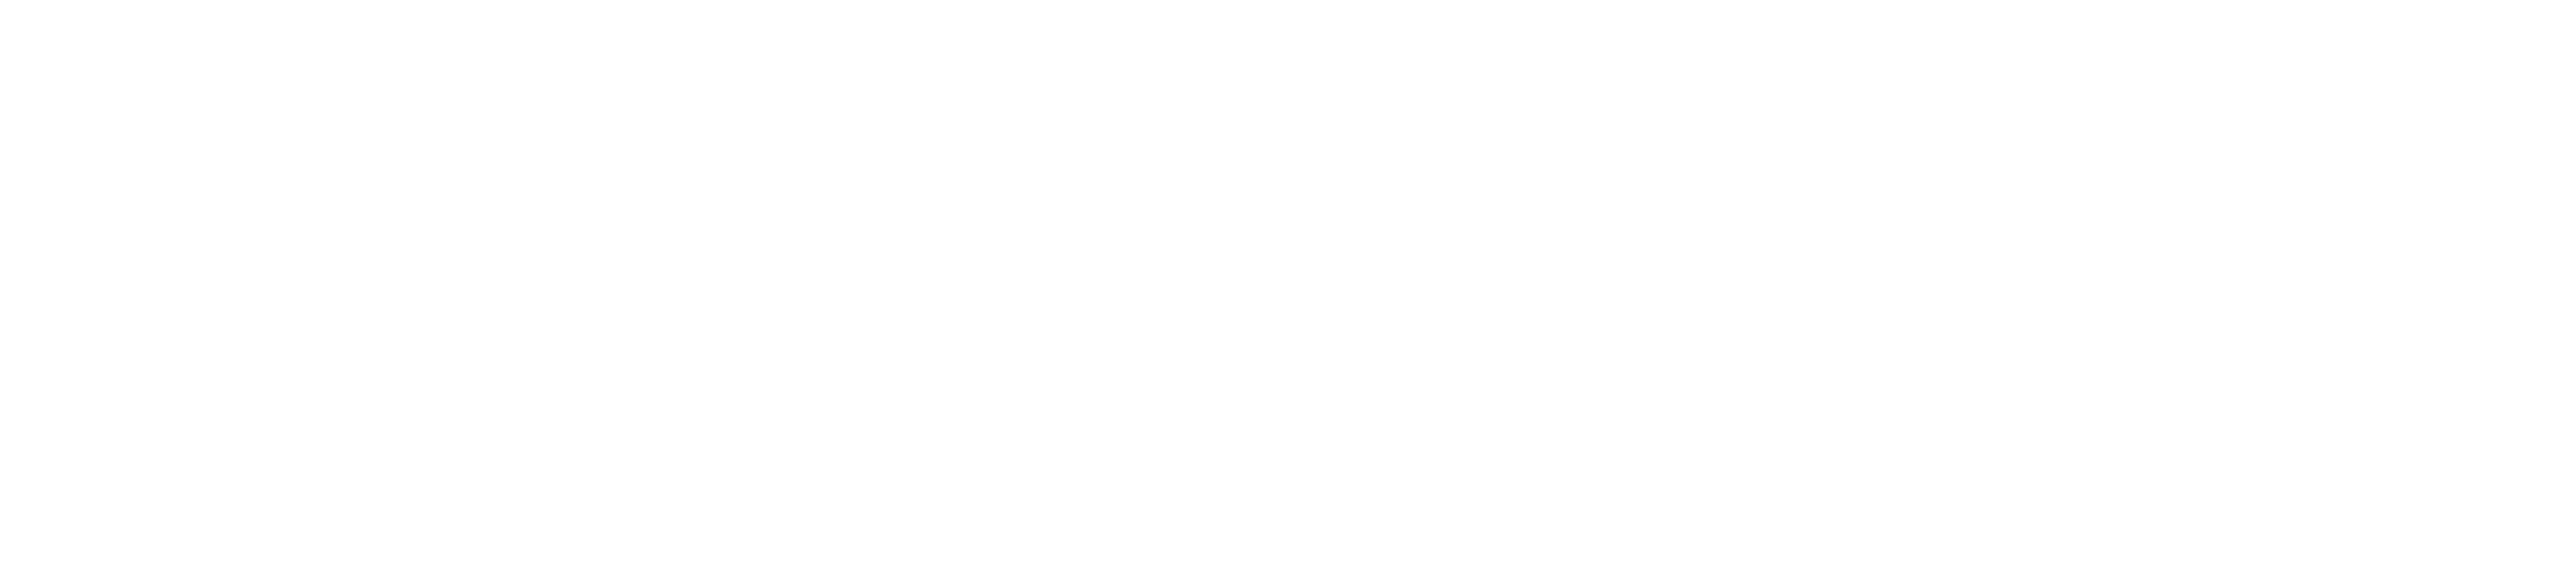 14 White Grunge Brush Stroke (PNG Transparent).